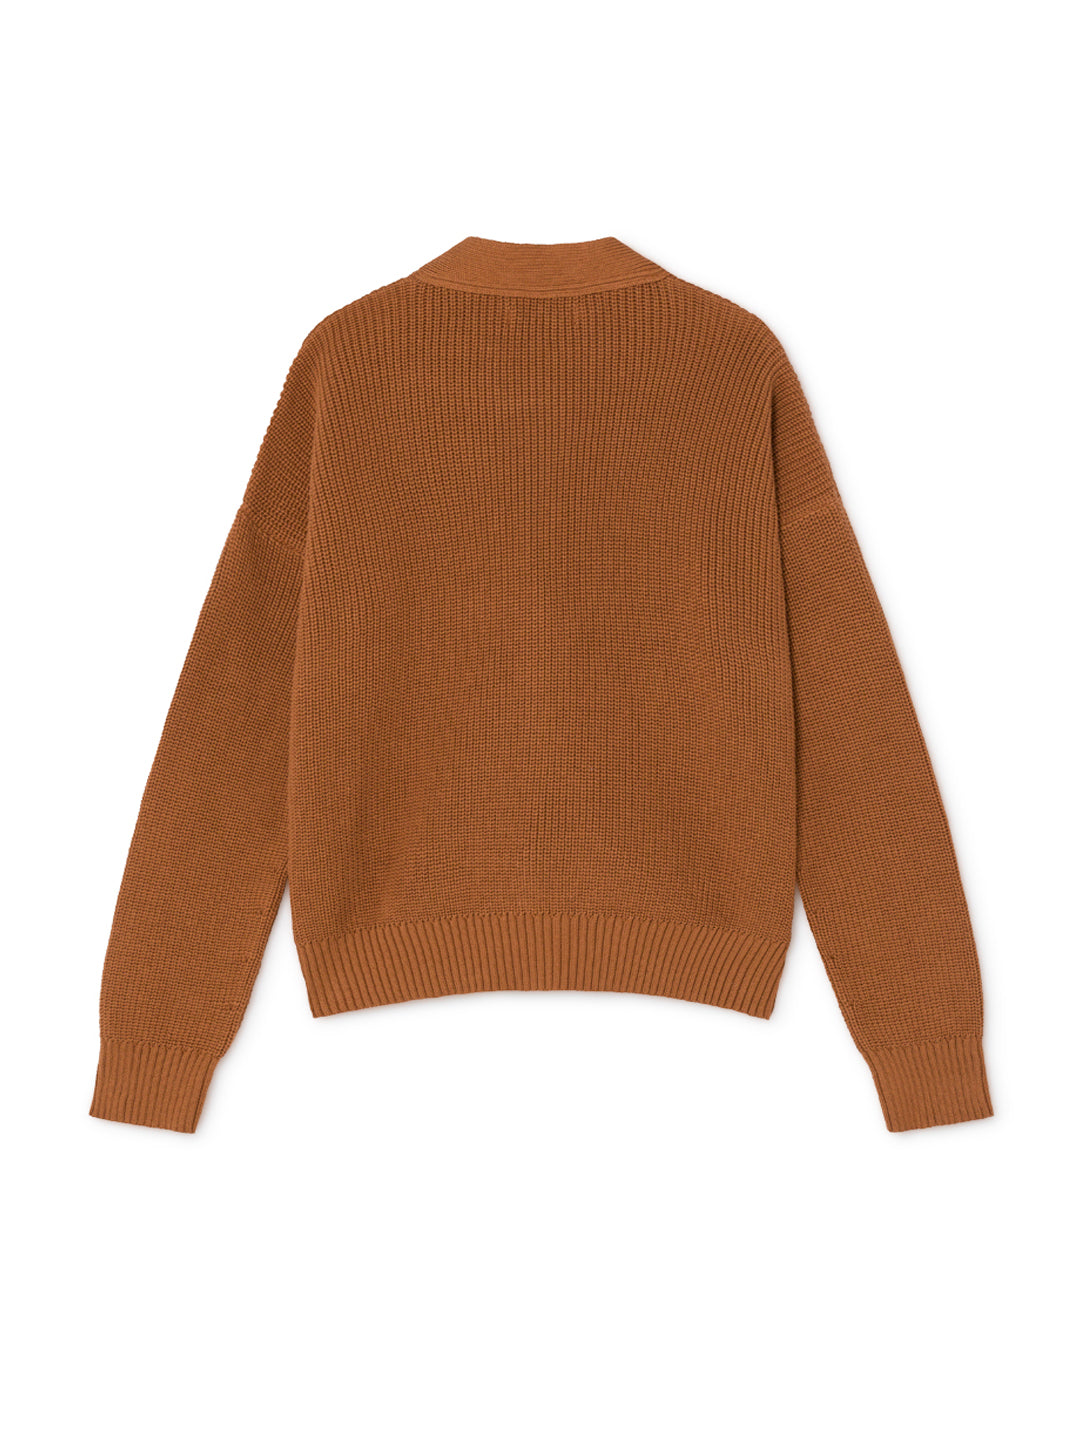 TWOTHIRDS Womens Knit: Huapi - Cinnamon back